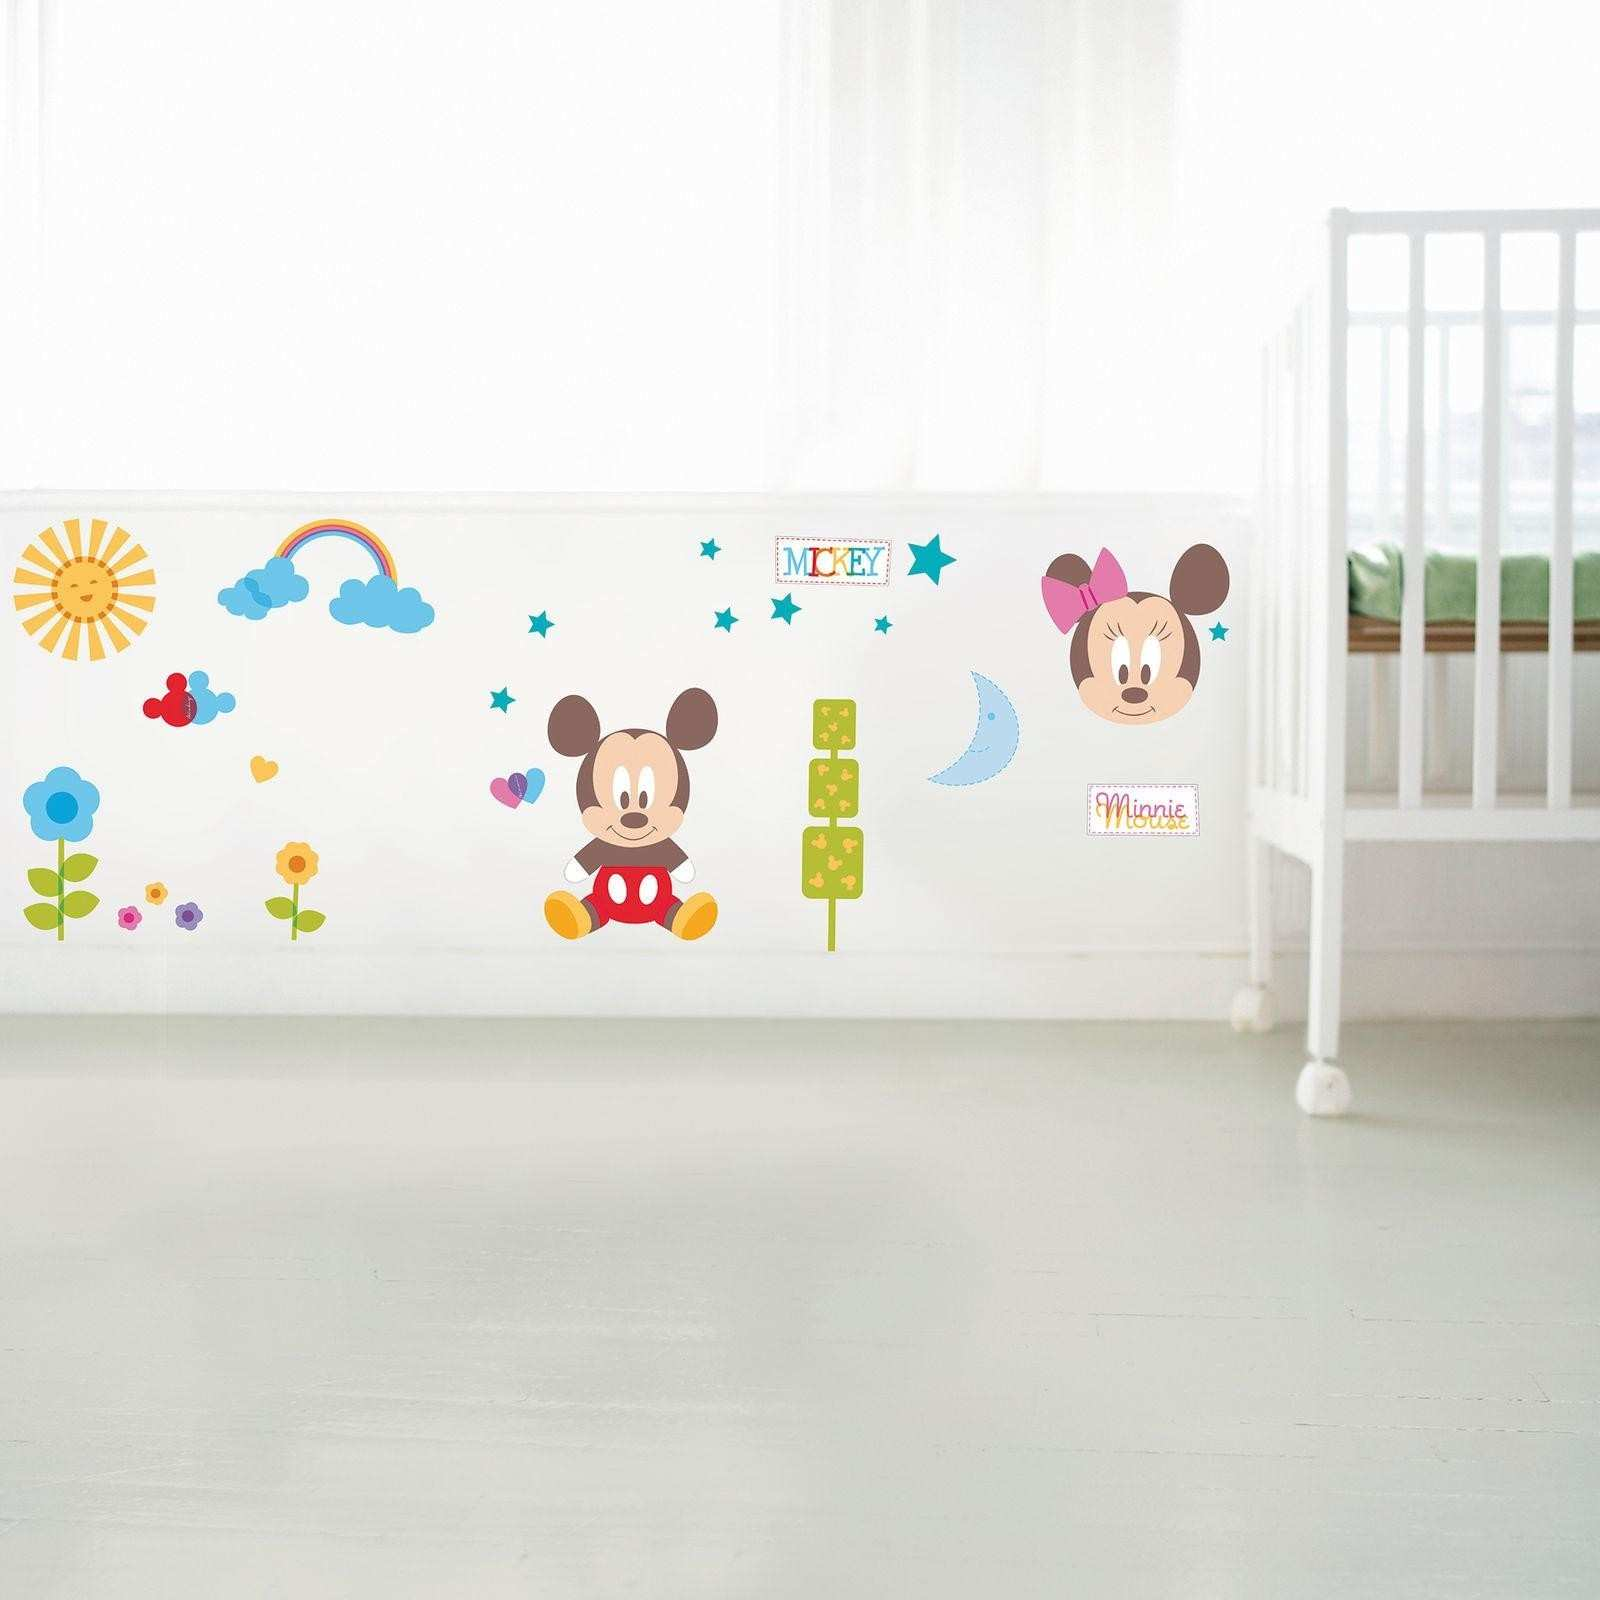 Disney Mickey Mouse & Minnie Mouse Wall Stickers Bedroom Nursery